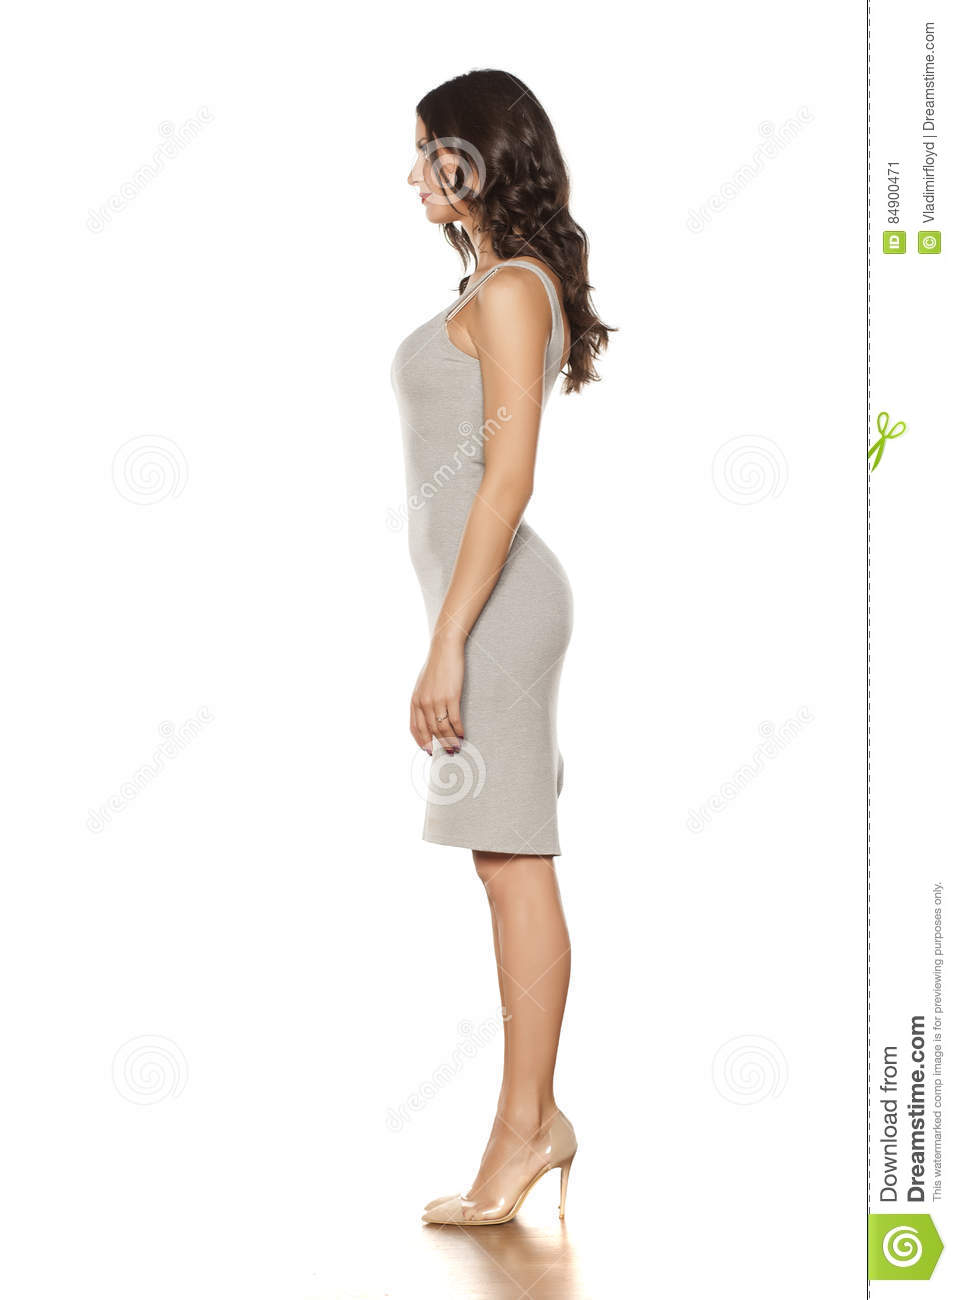 Short dress and high heels stock image. Image of cute